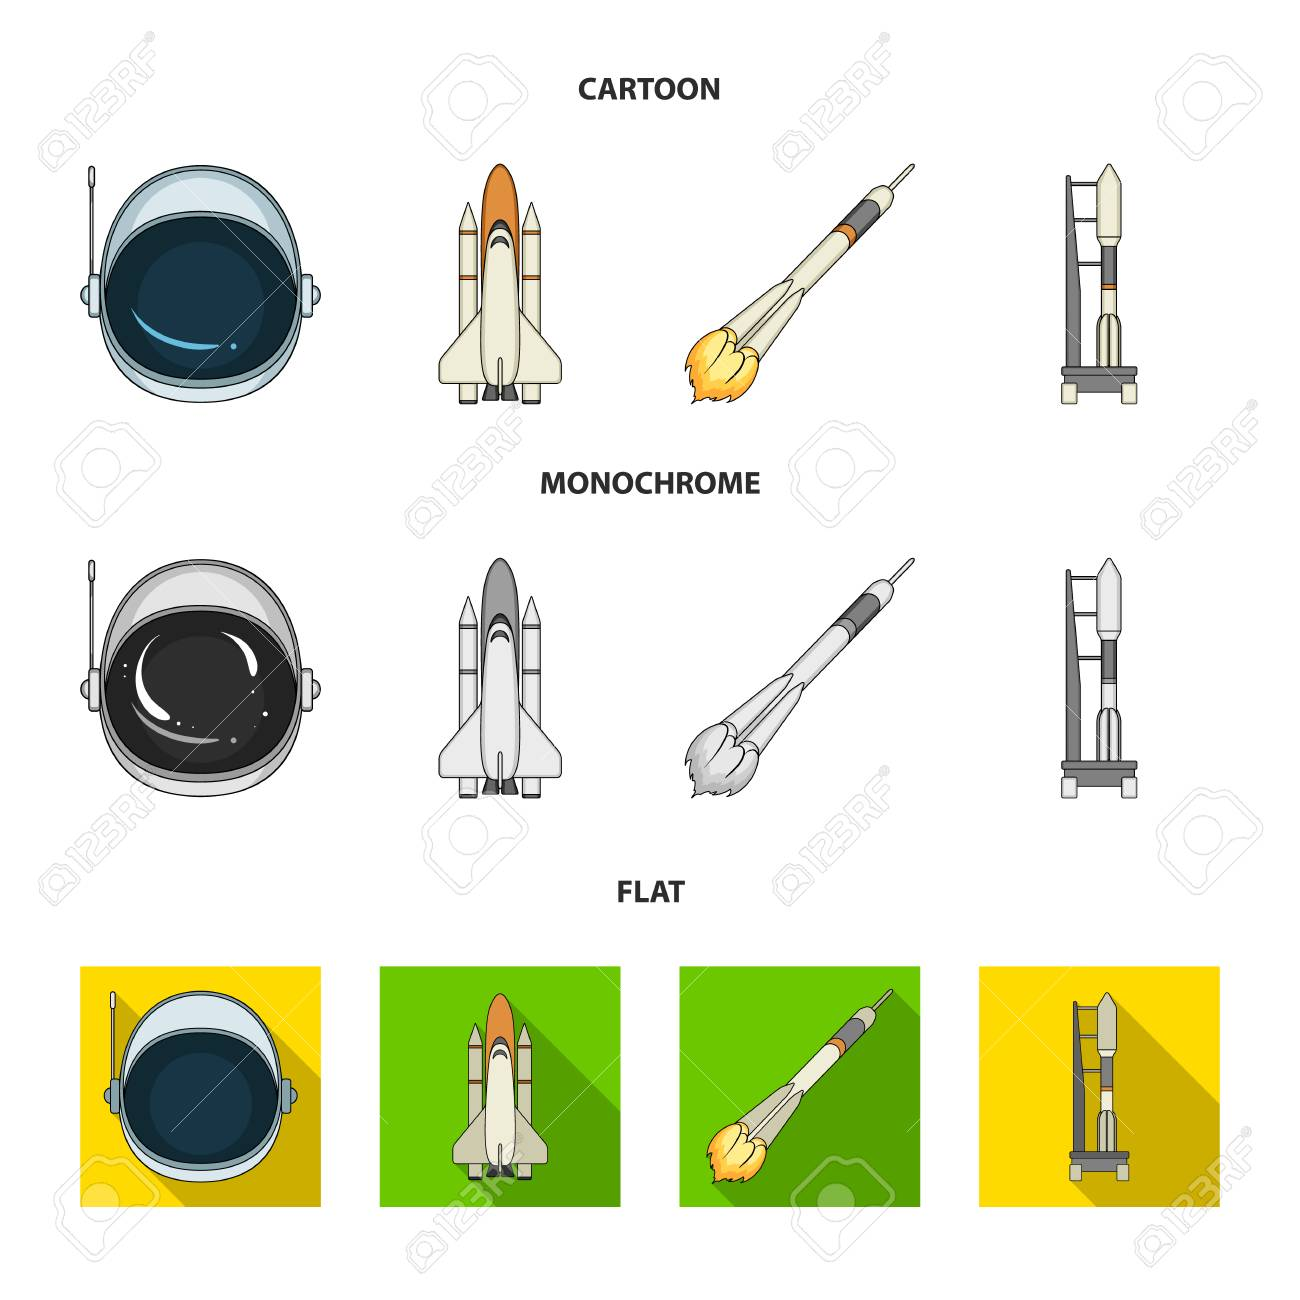 98628076 a spaceship in space a cargo shuttle a launch pad an astronaut helmet space technology set collectio a spaceship in space, a cargo shuttle, a launch pad, an astronaut